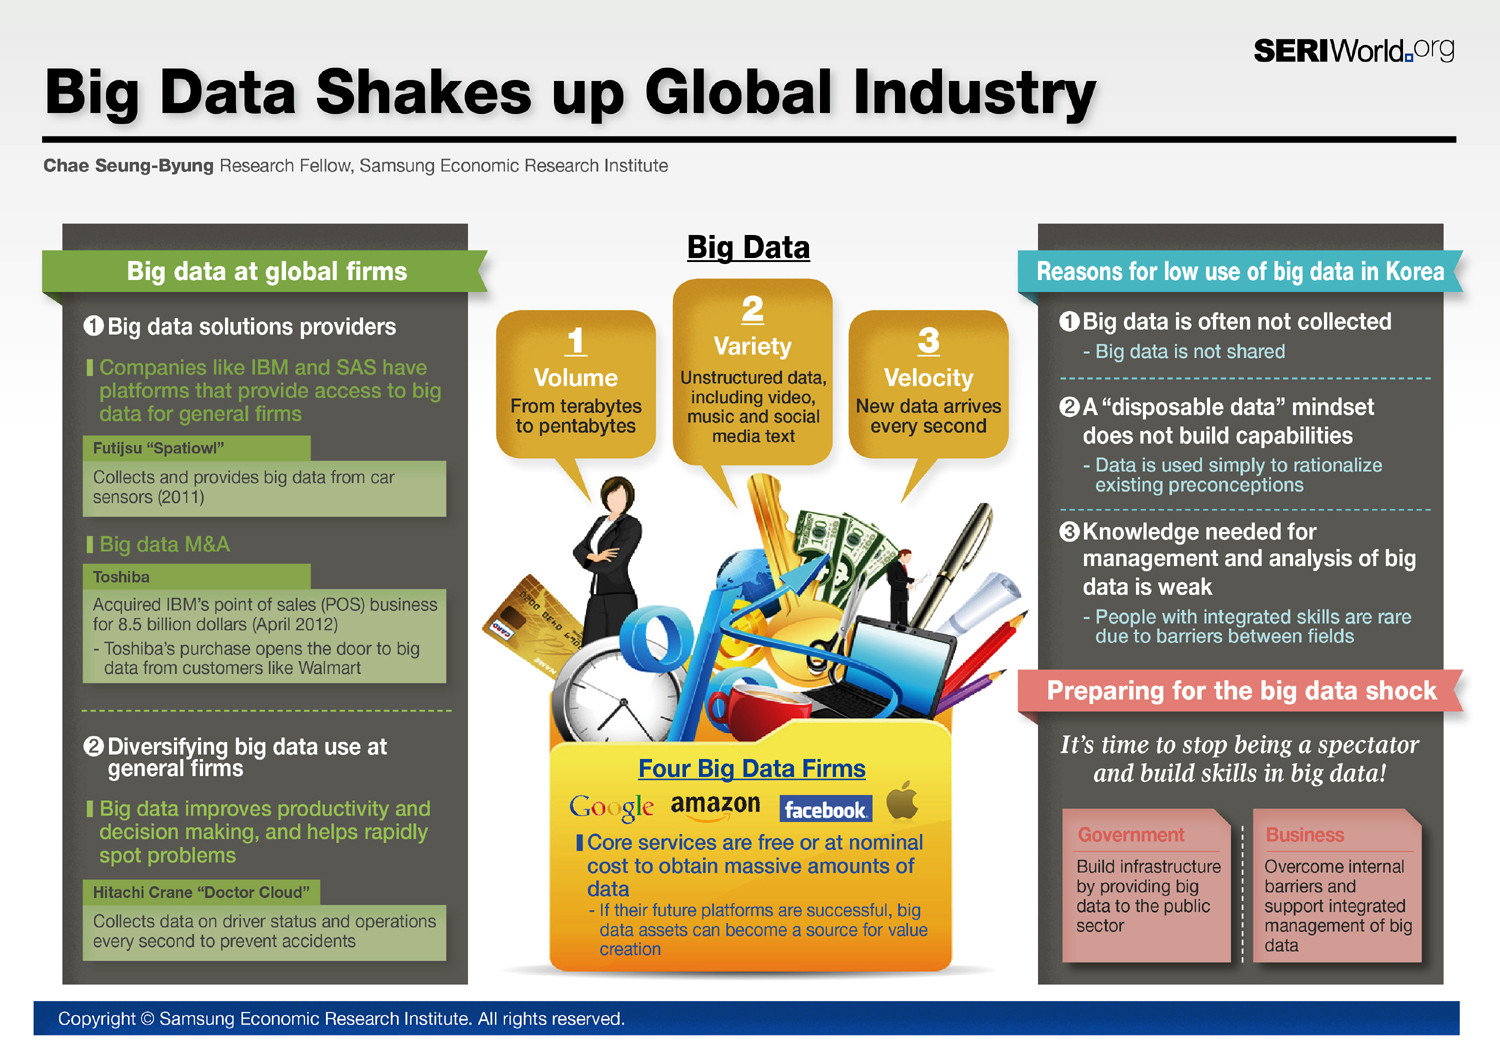 Big Data Shakes up Global Industry Infographic